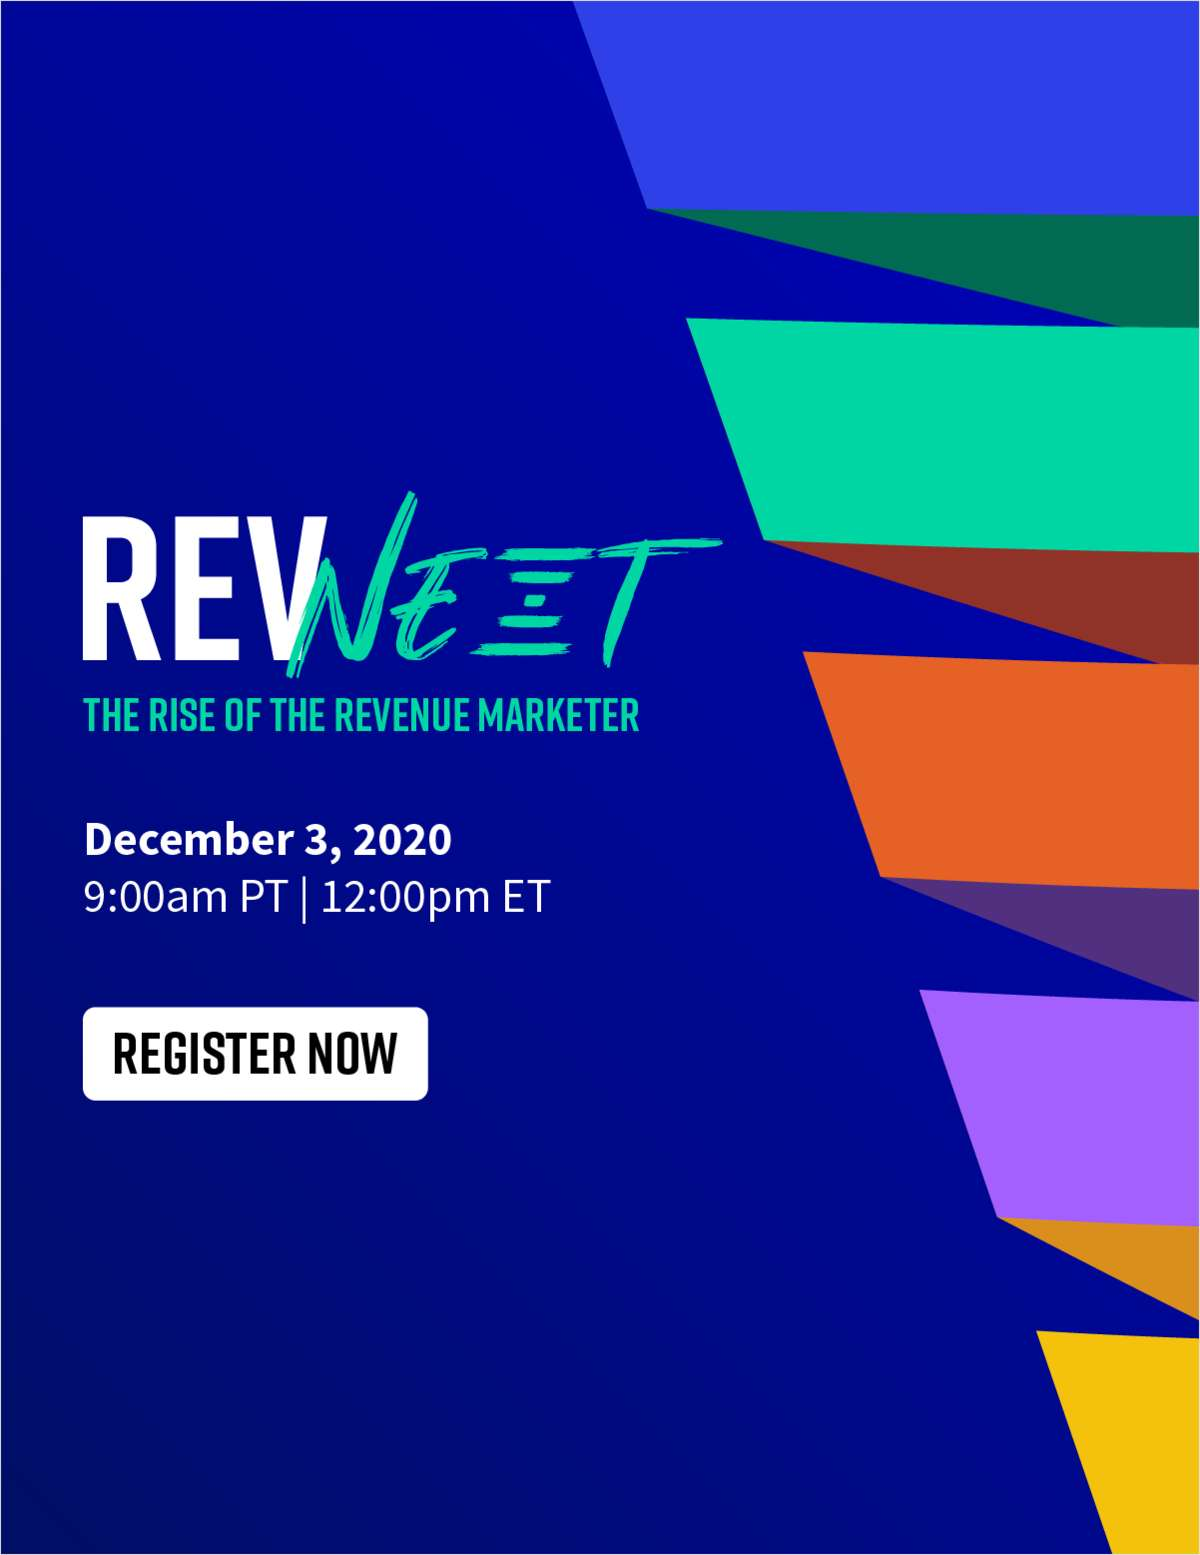 RevNEXT Summit: The Rise of the Revenue Marketer